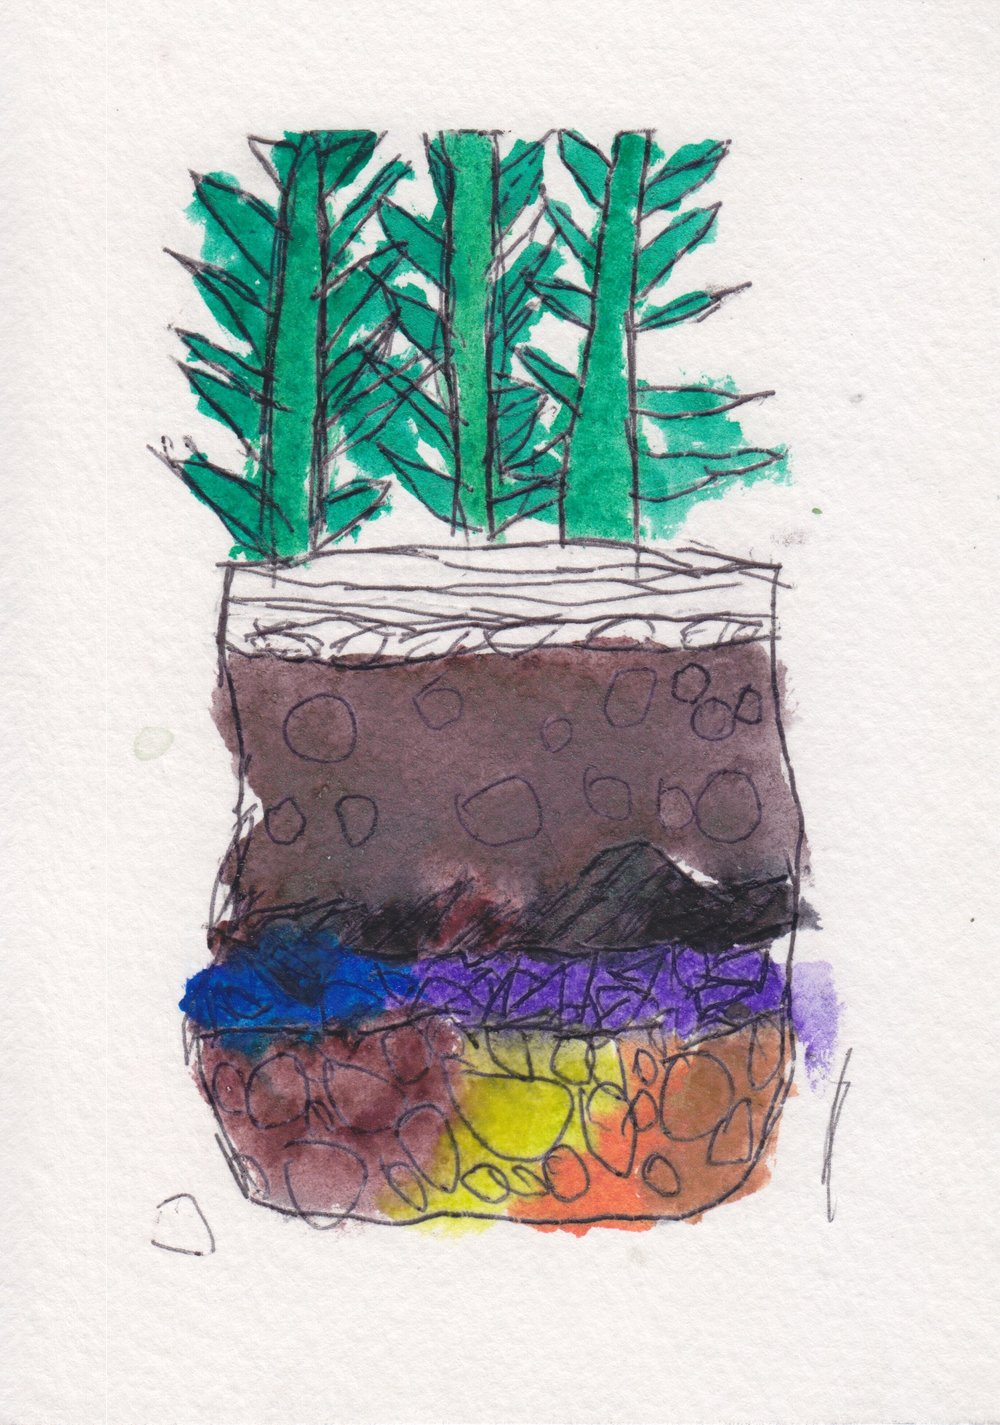 centro_watercolor terrarium_JulianPerez.jpeg